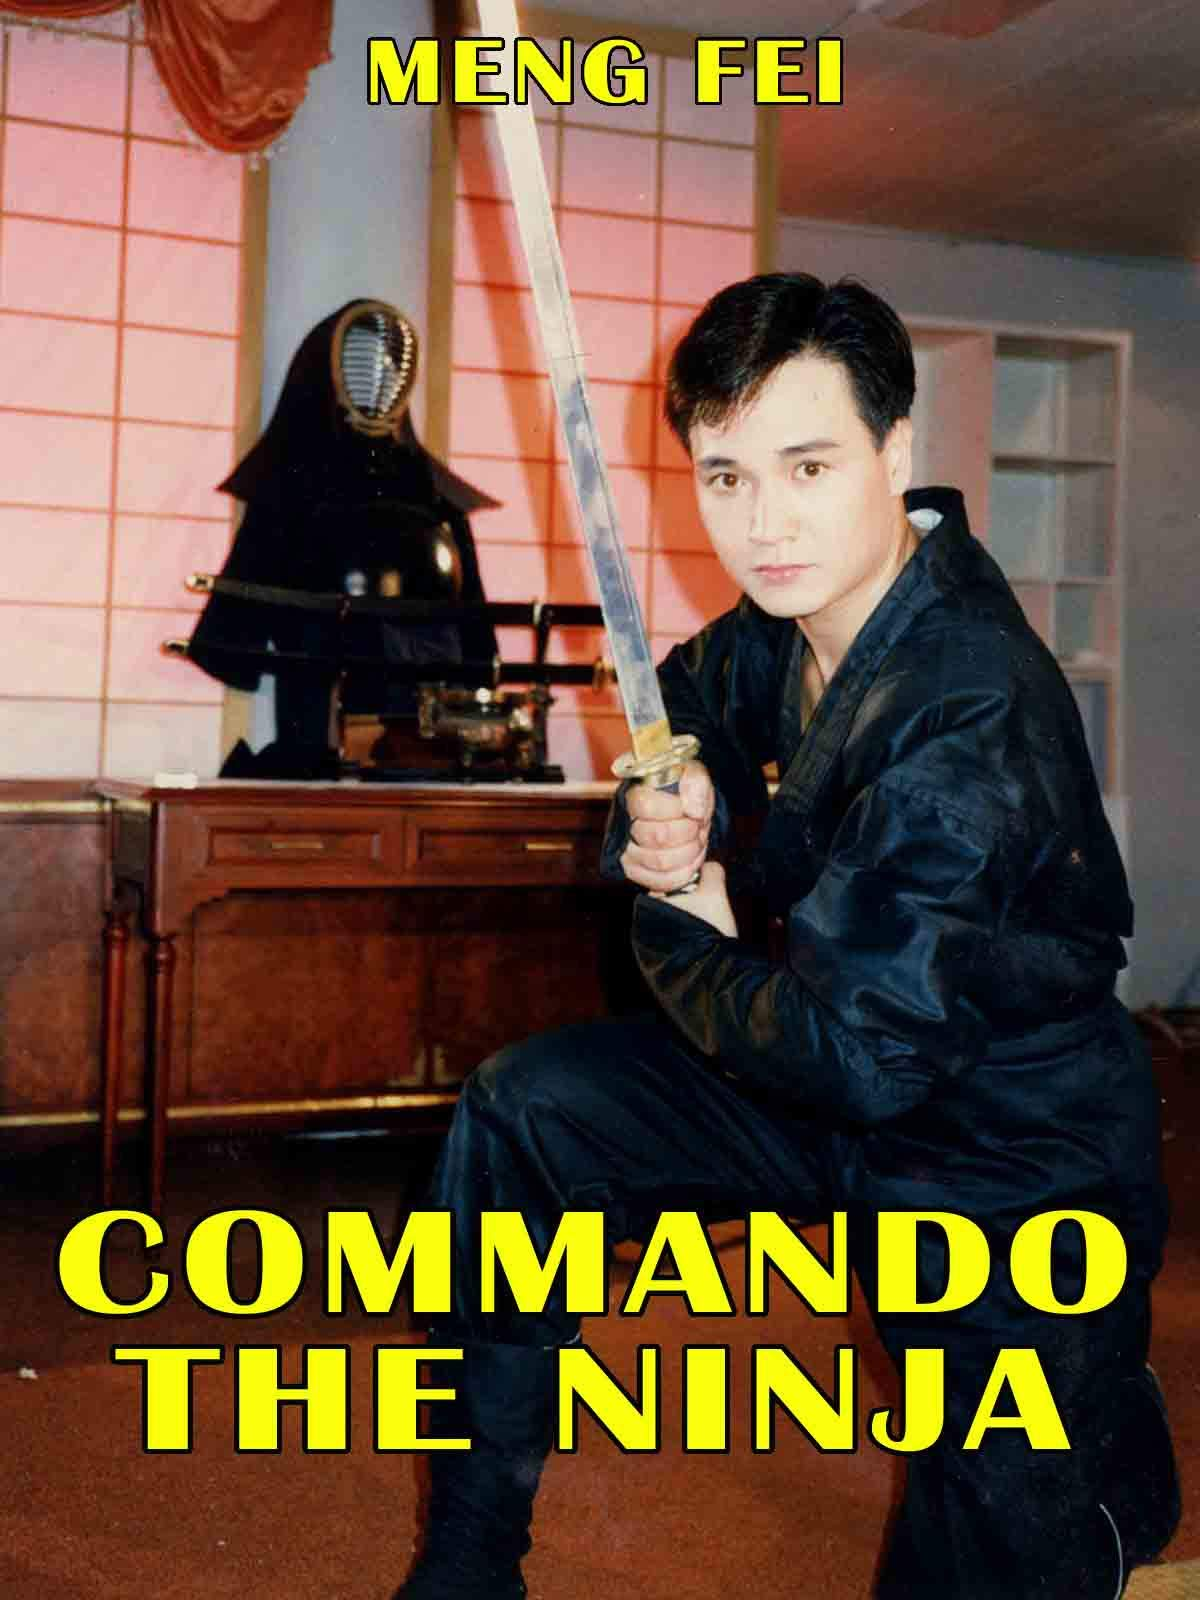 Watch Commando The Ninja | Prime Video